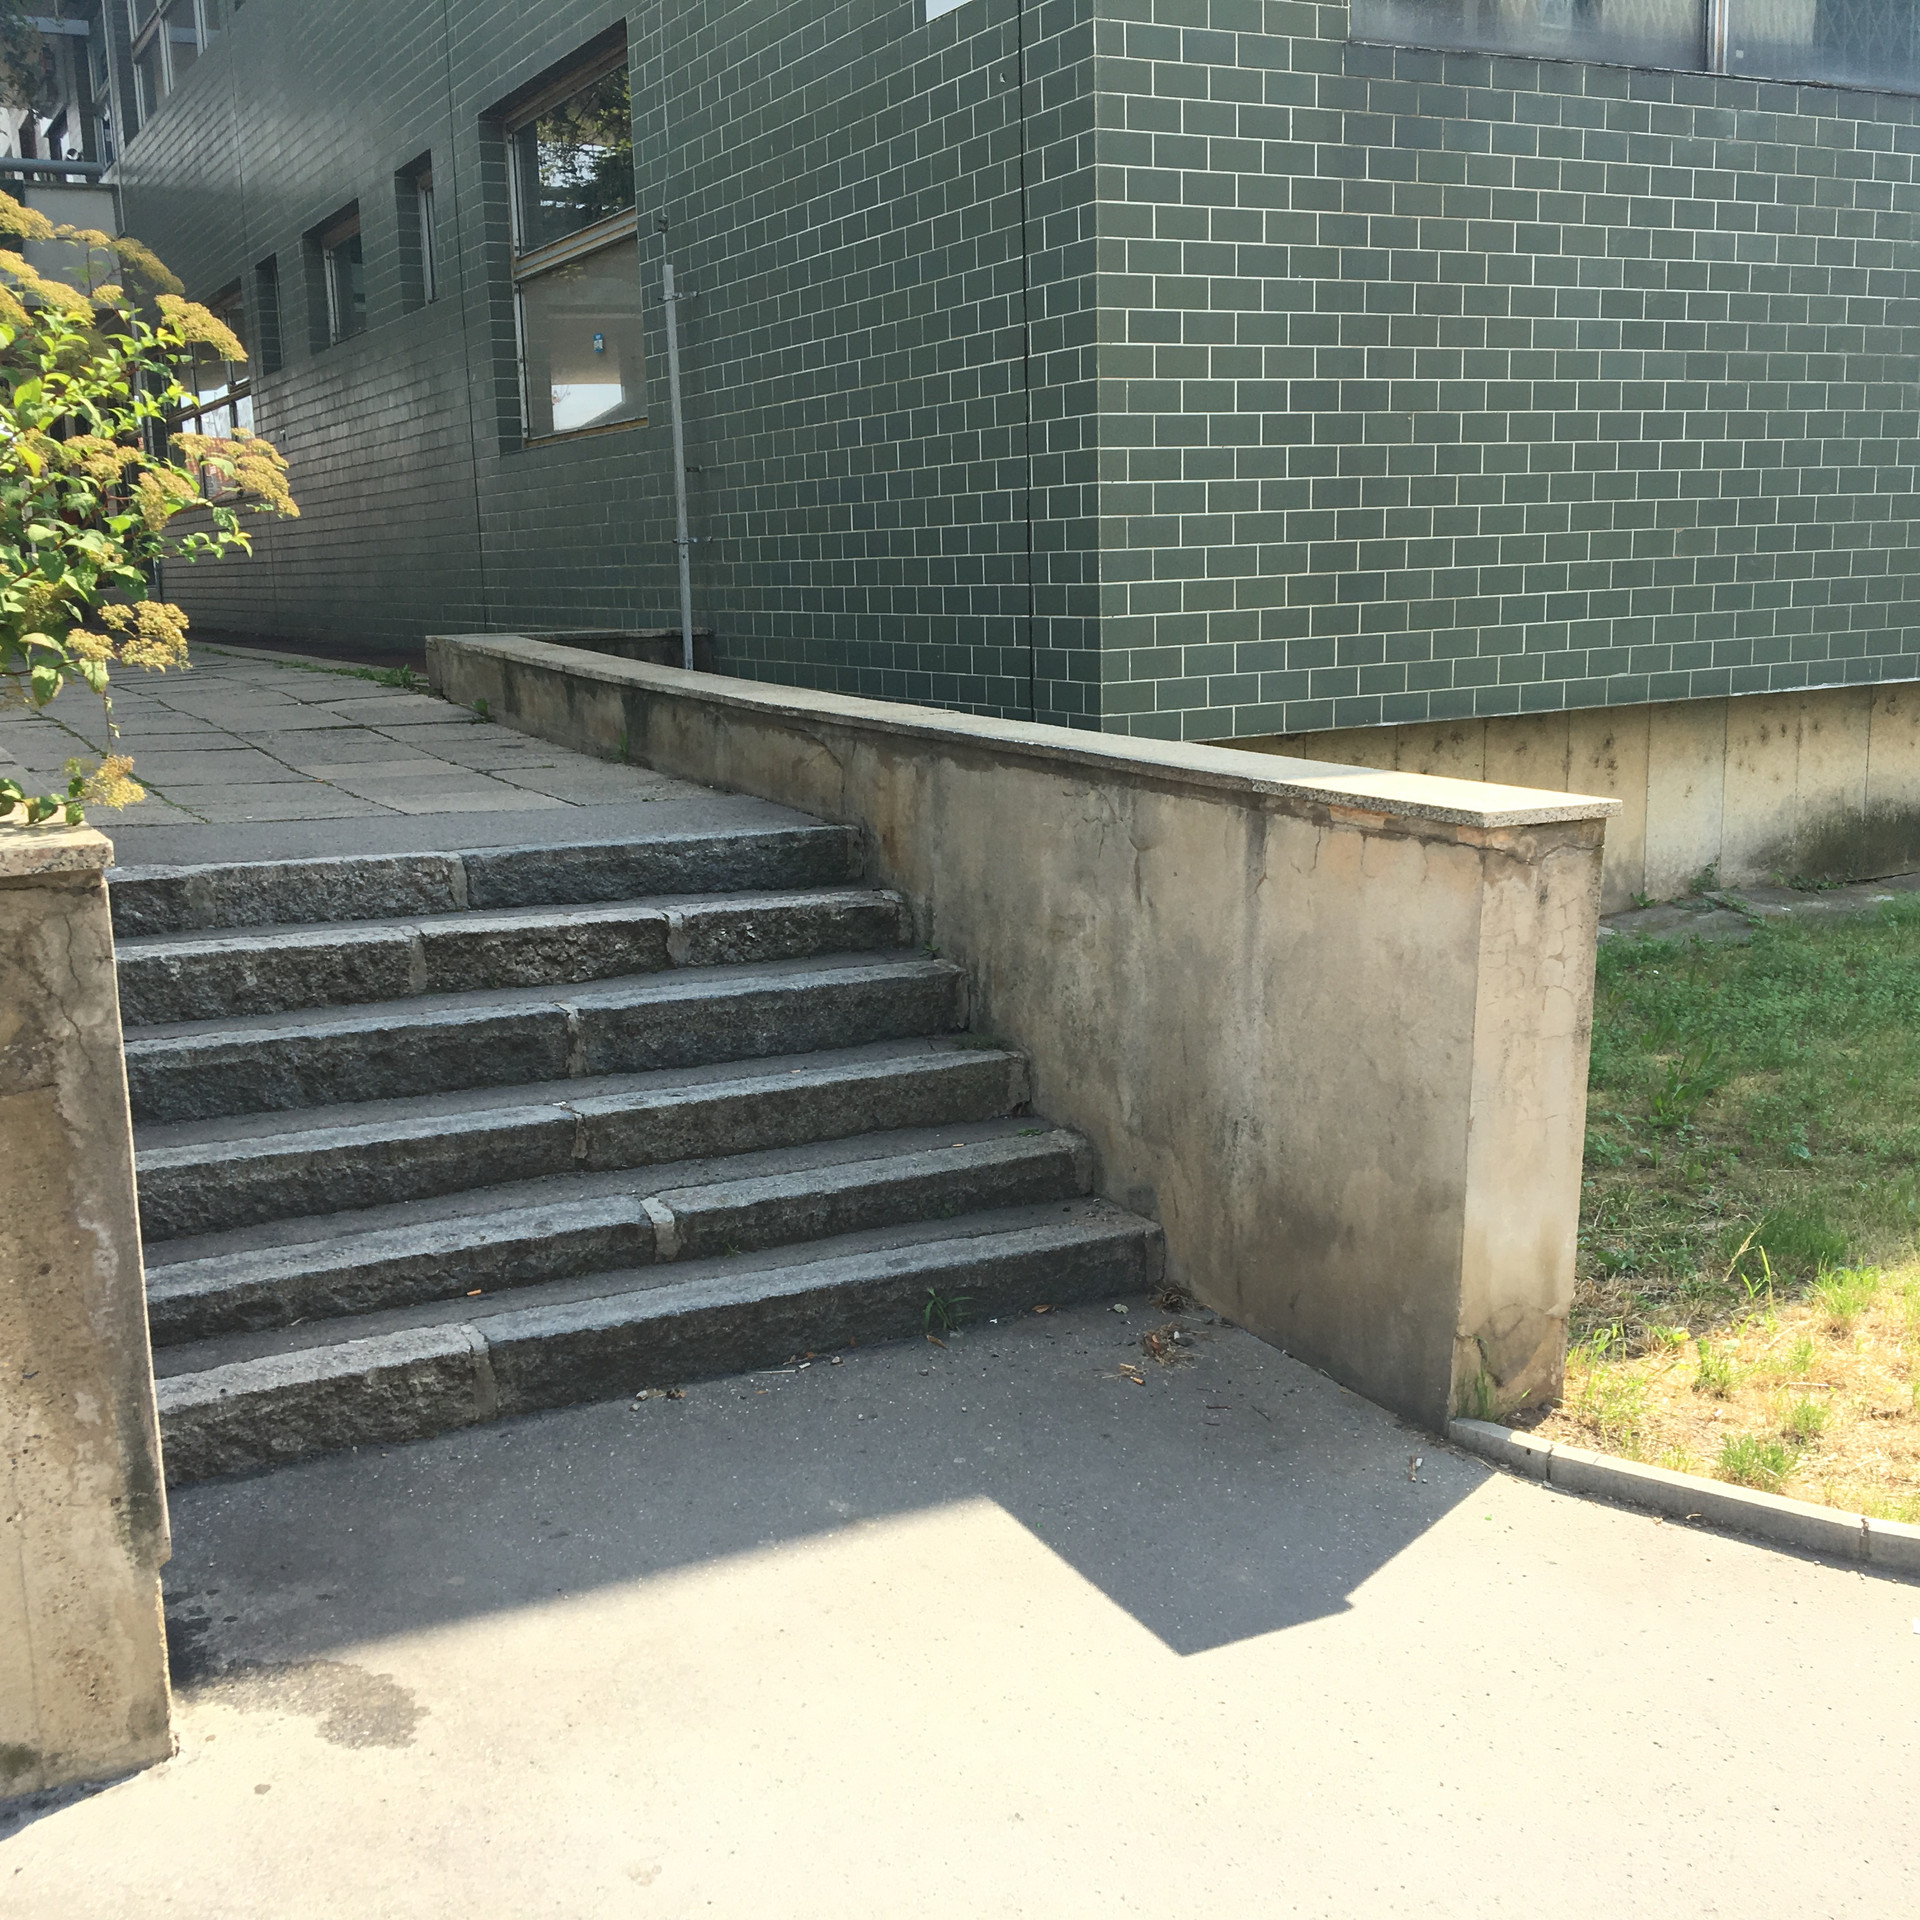 Ledge 6 stairs  